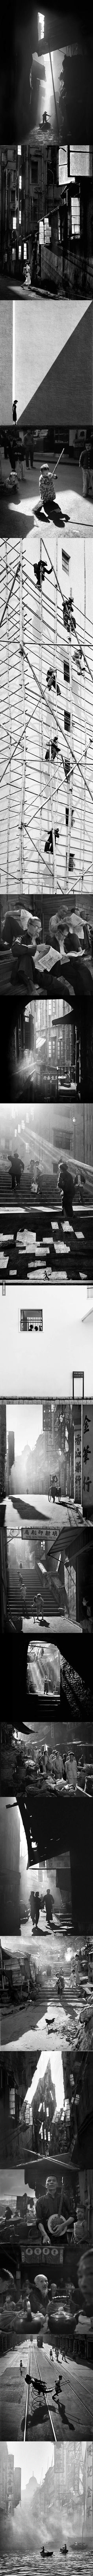 1950s Hong Kong Captured In Street Photography (By Fan Ho)